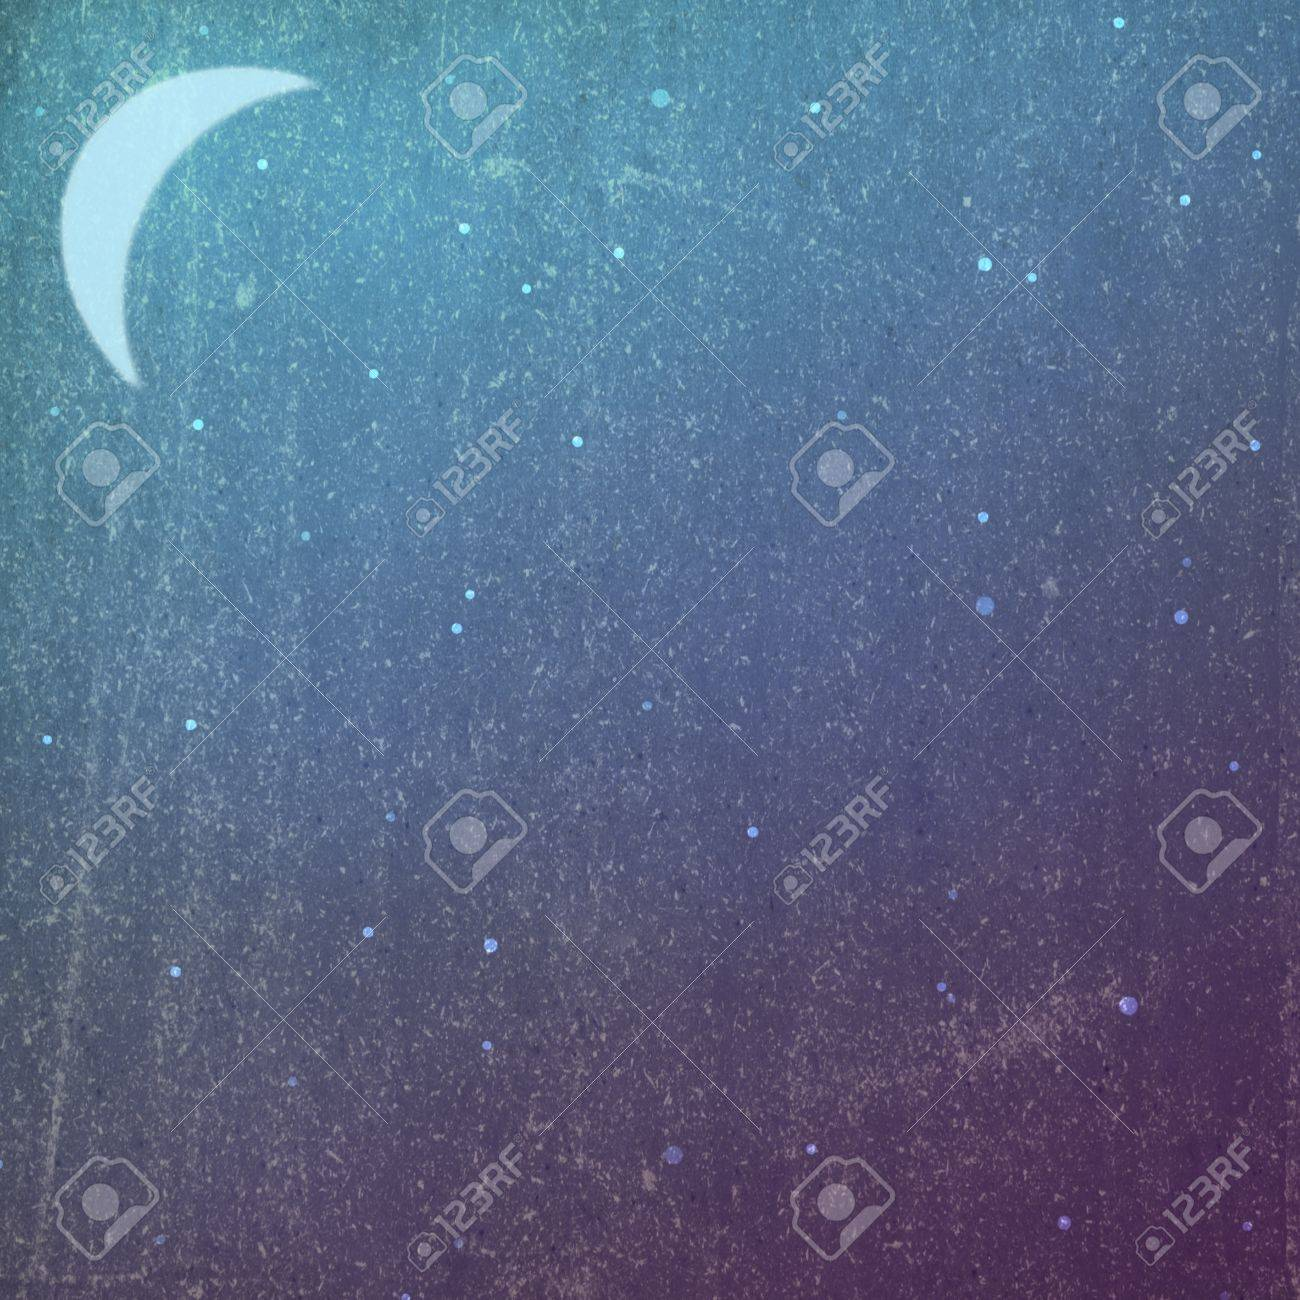 Grunge/vintage night background with moon - 15803456